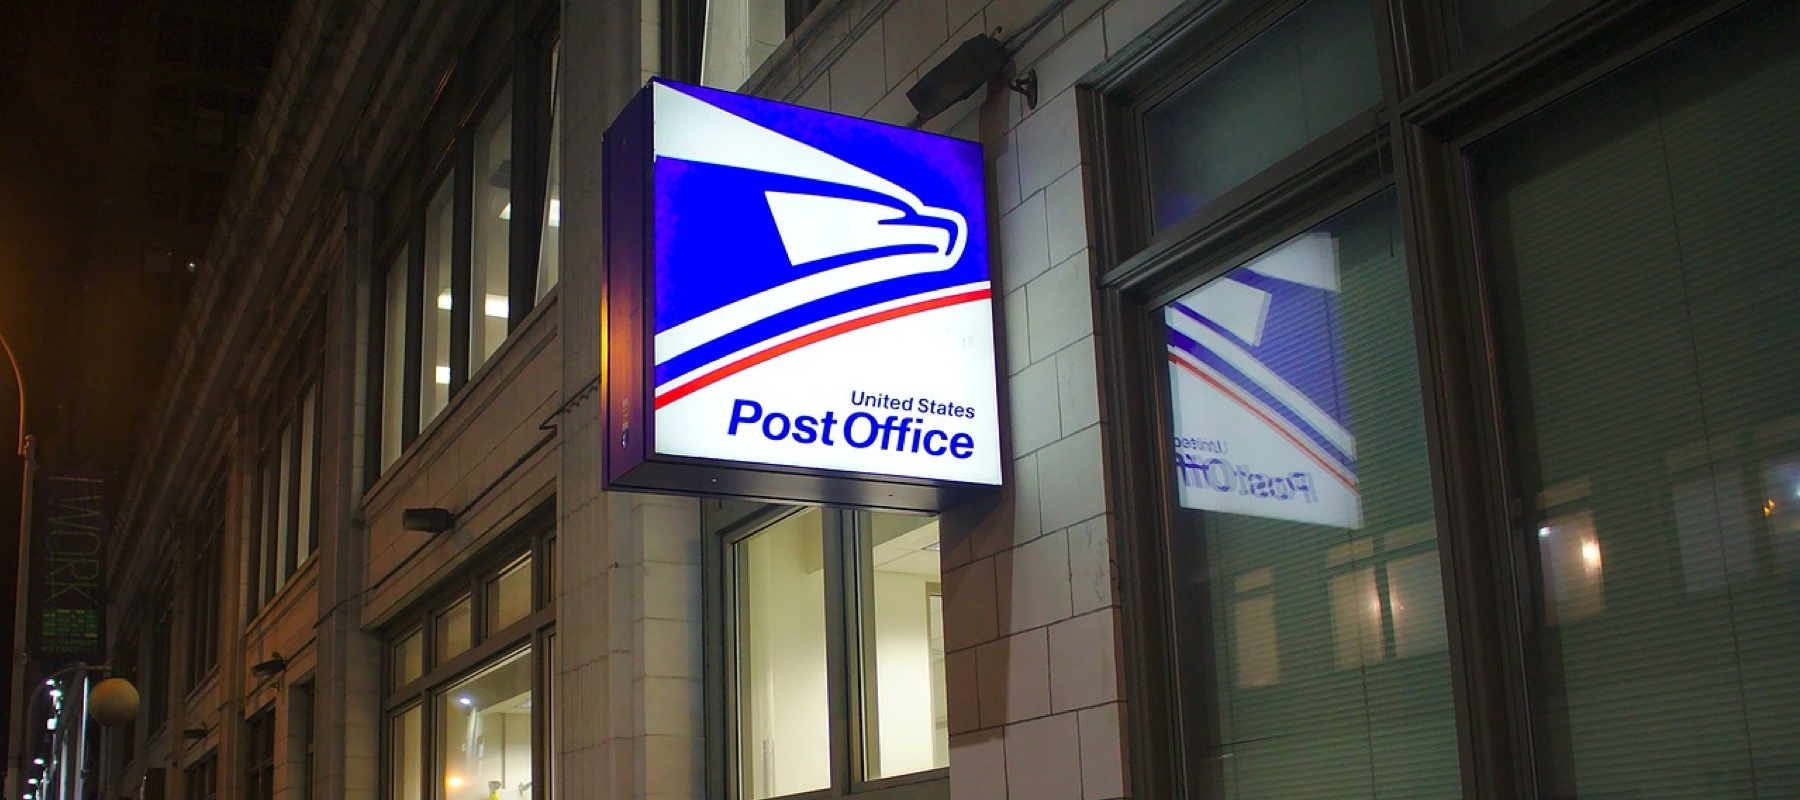 The Post Office May Disappear - What Could This Mean for Your Nonprofit?